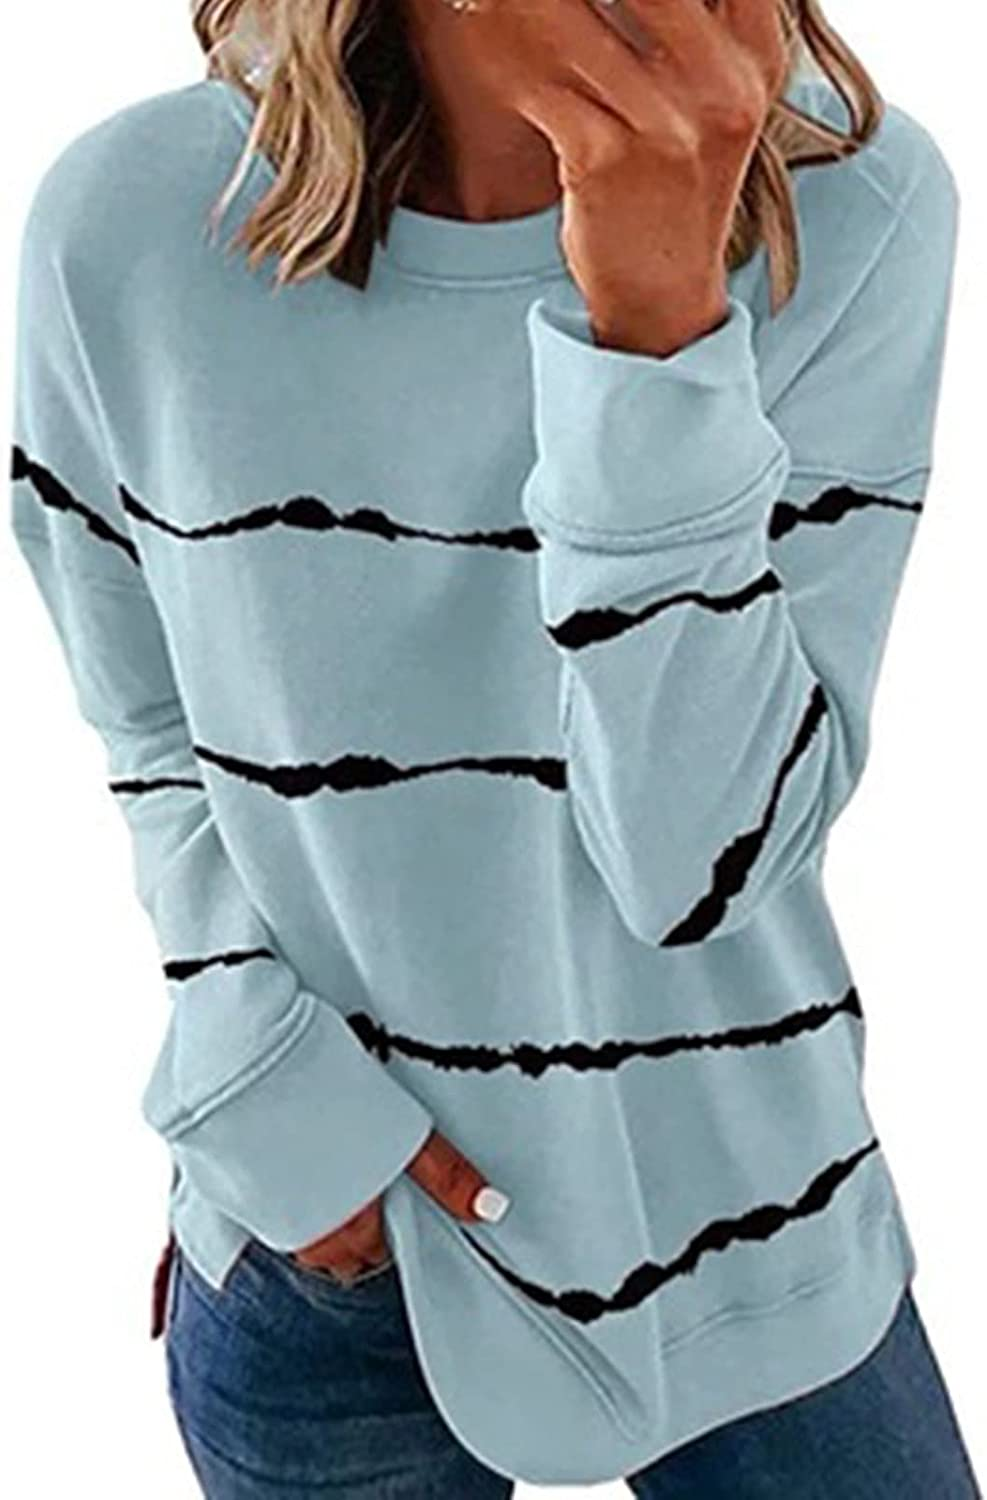 Women's Casual Strips Tee Top Long Sleeve Round Neck Printing Pullover Shirt Going Out Loose Blouse Tops